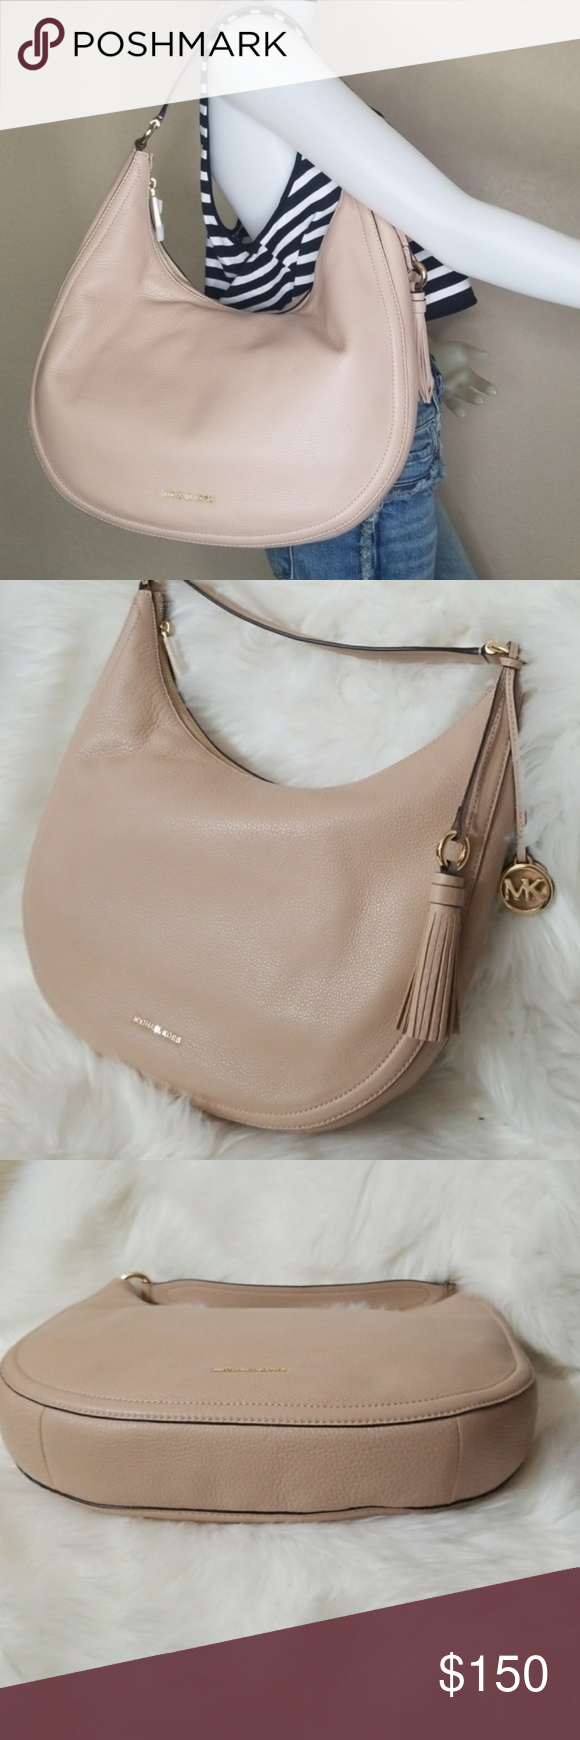 51d1602f8314 NWT MichaeL Kors Lydia Large Hobo With Tassel Bag NEW WITH TAGS - AUTHENTIC  --